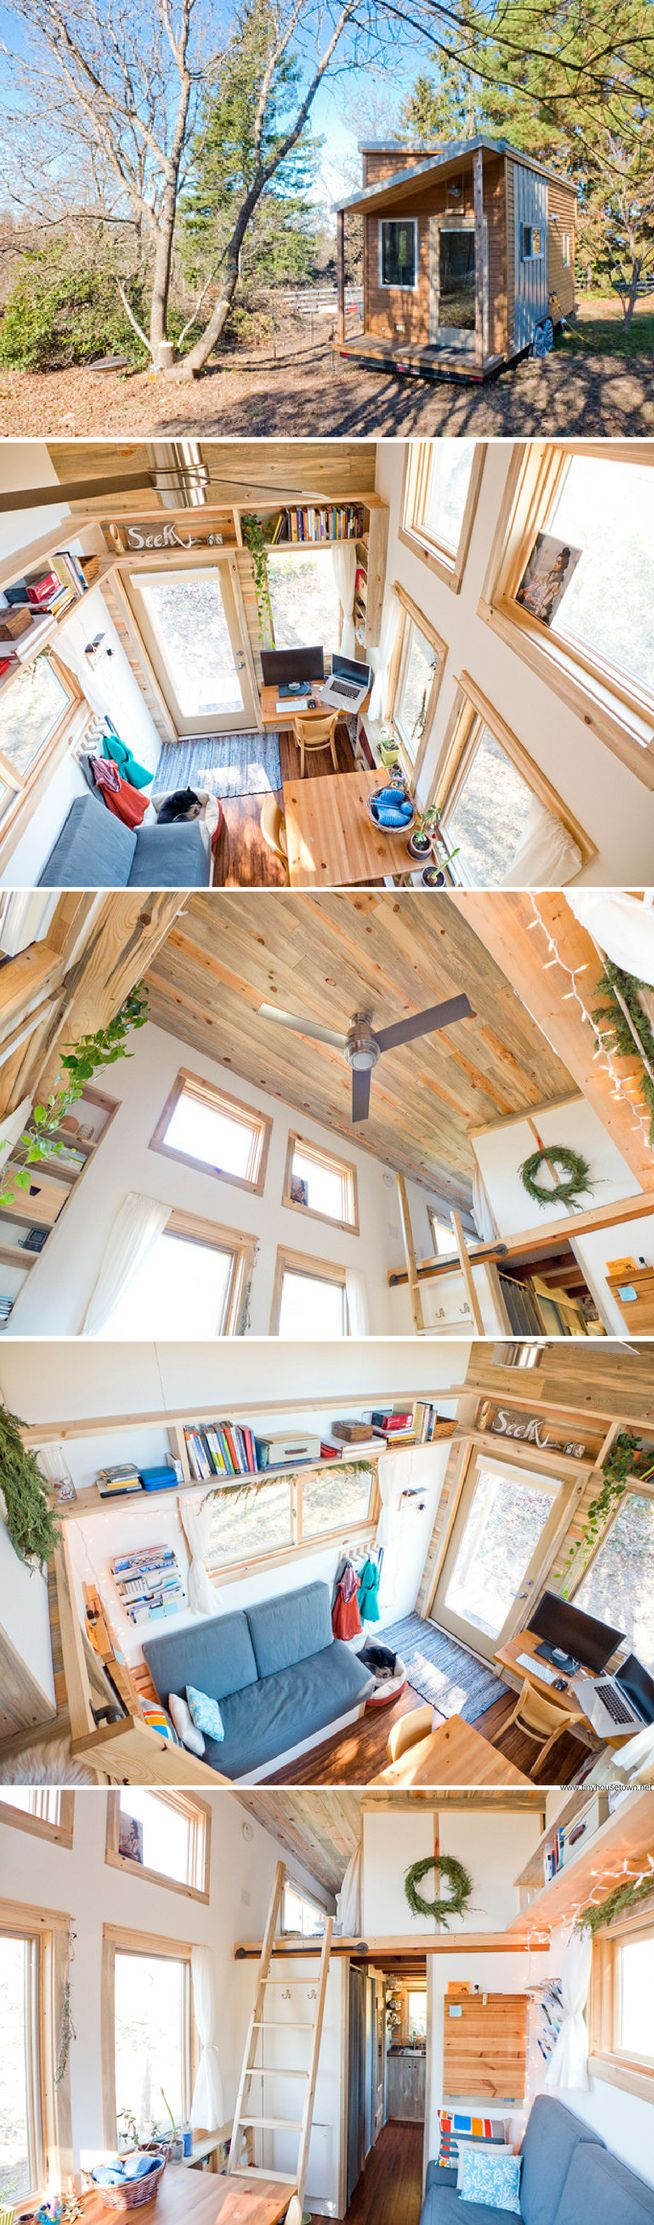 A beautiful 240 sq ft tiny house